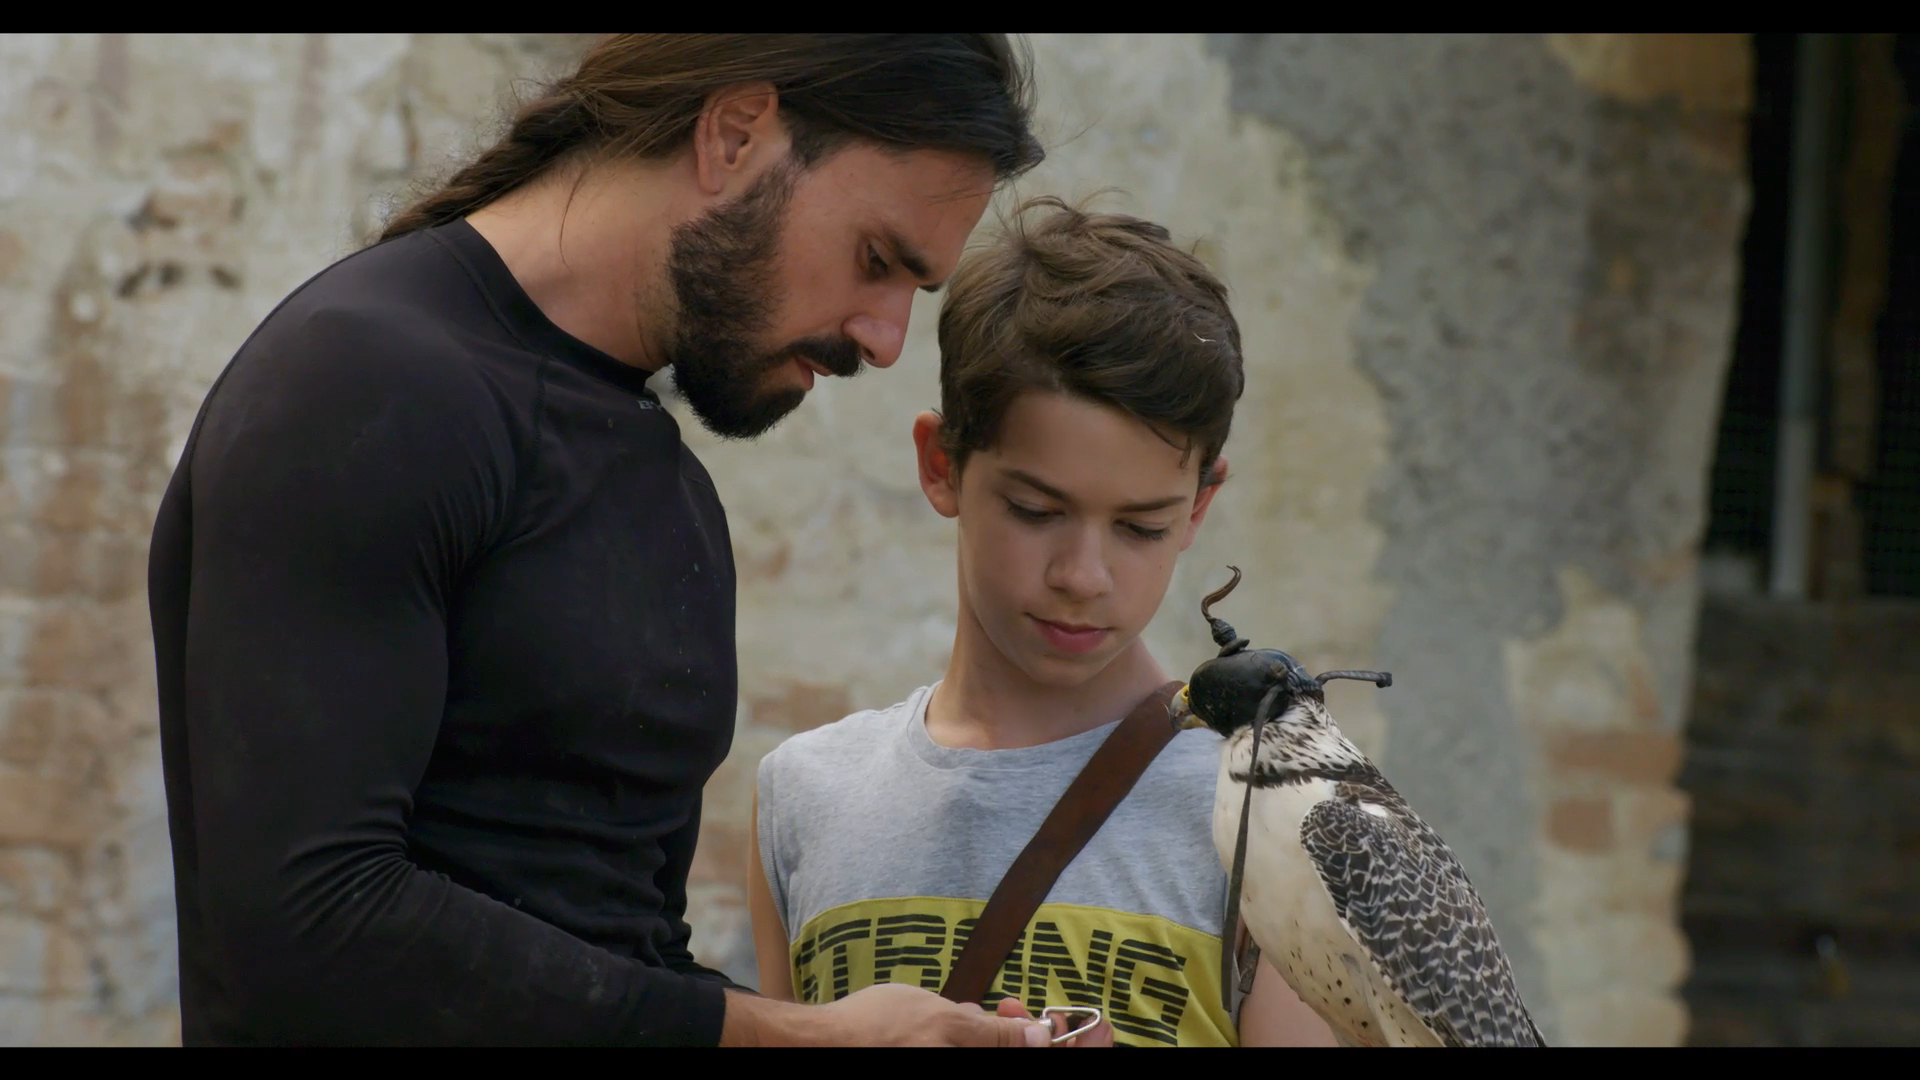 Giovanni Granati and his son, Angelo, working with a falcon in Italy.